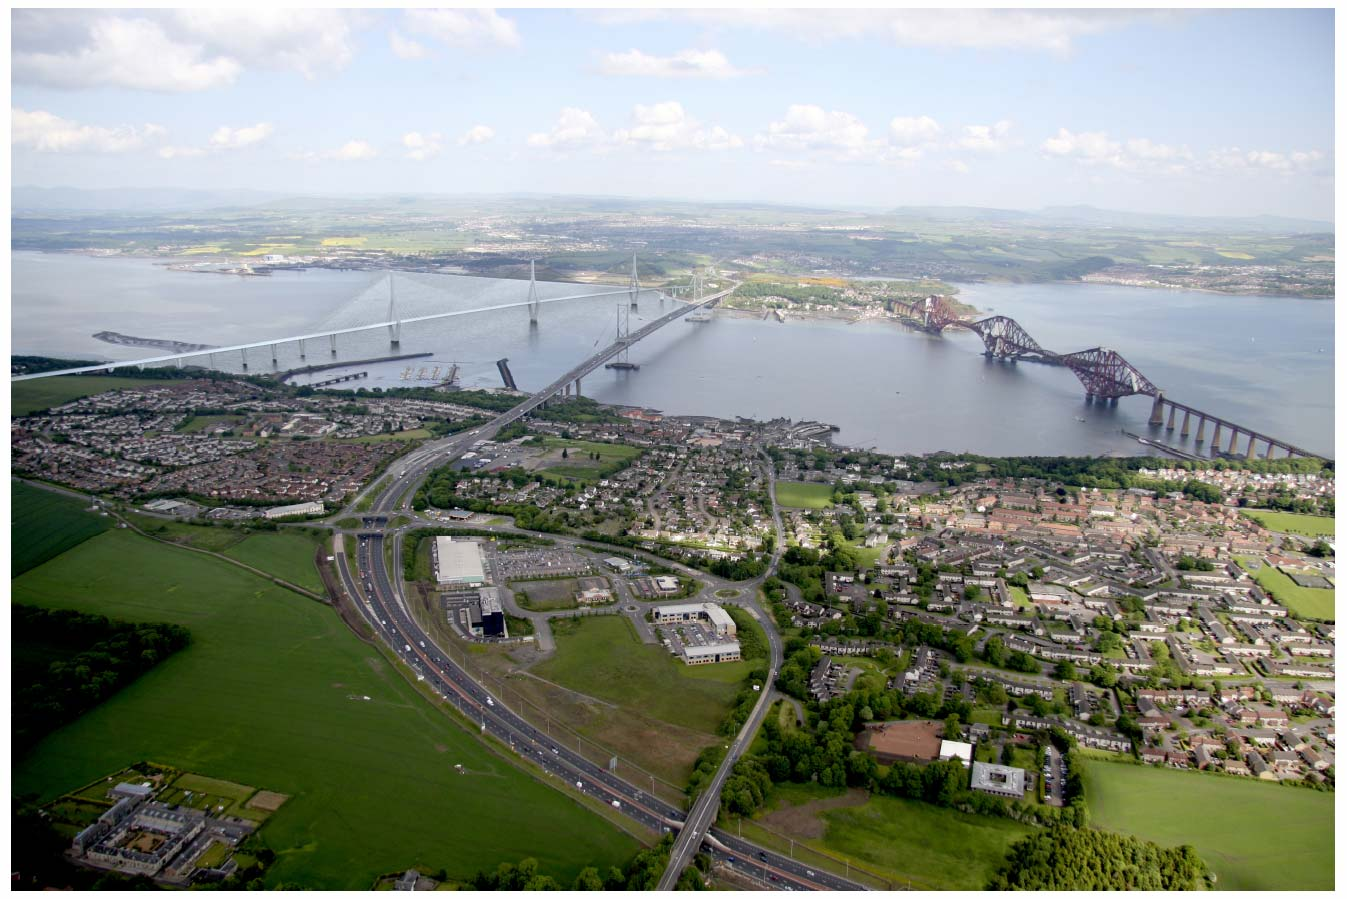 Diamond Tower viewed from above South Queensferry